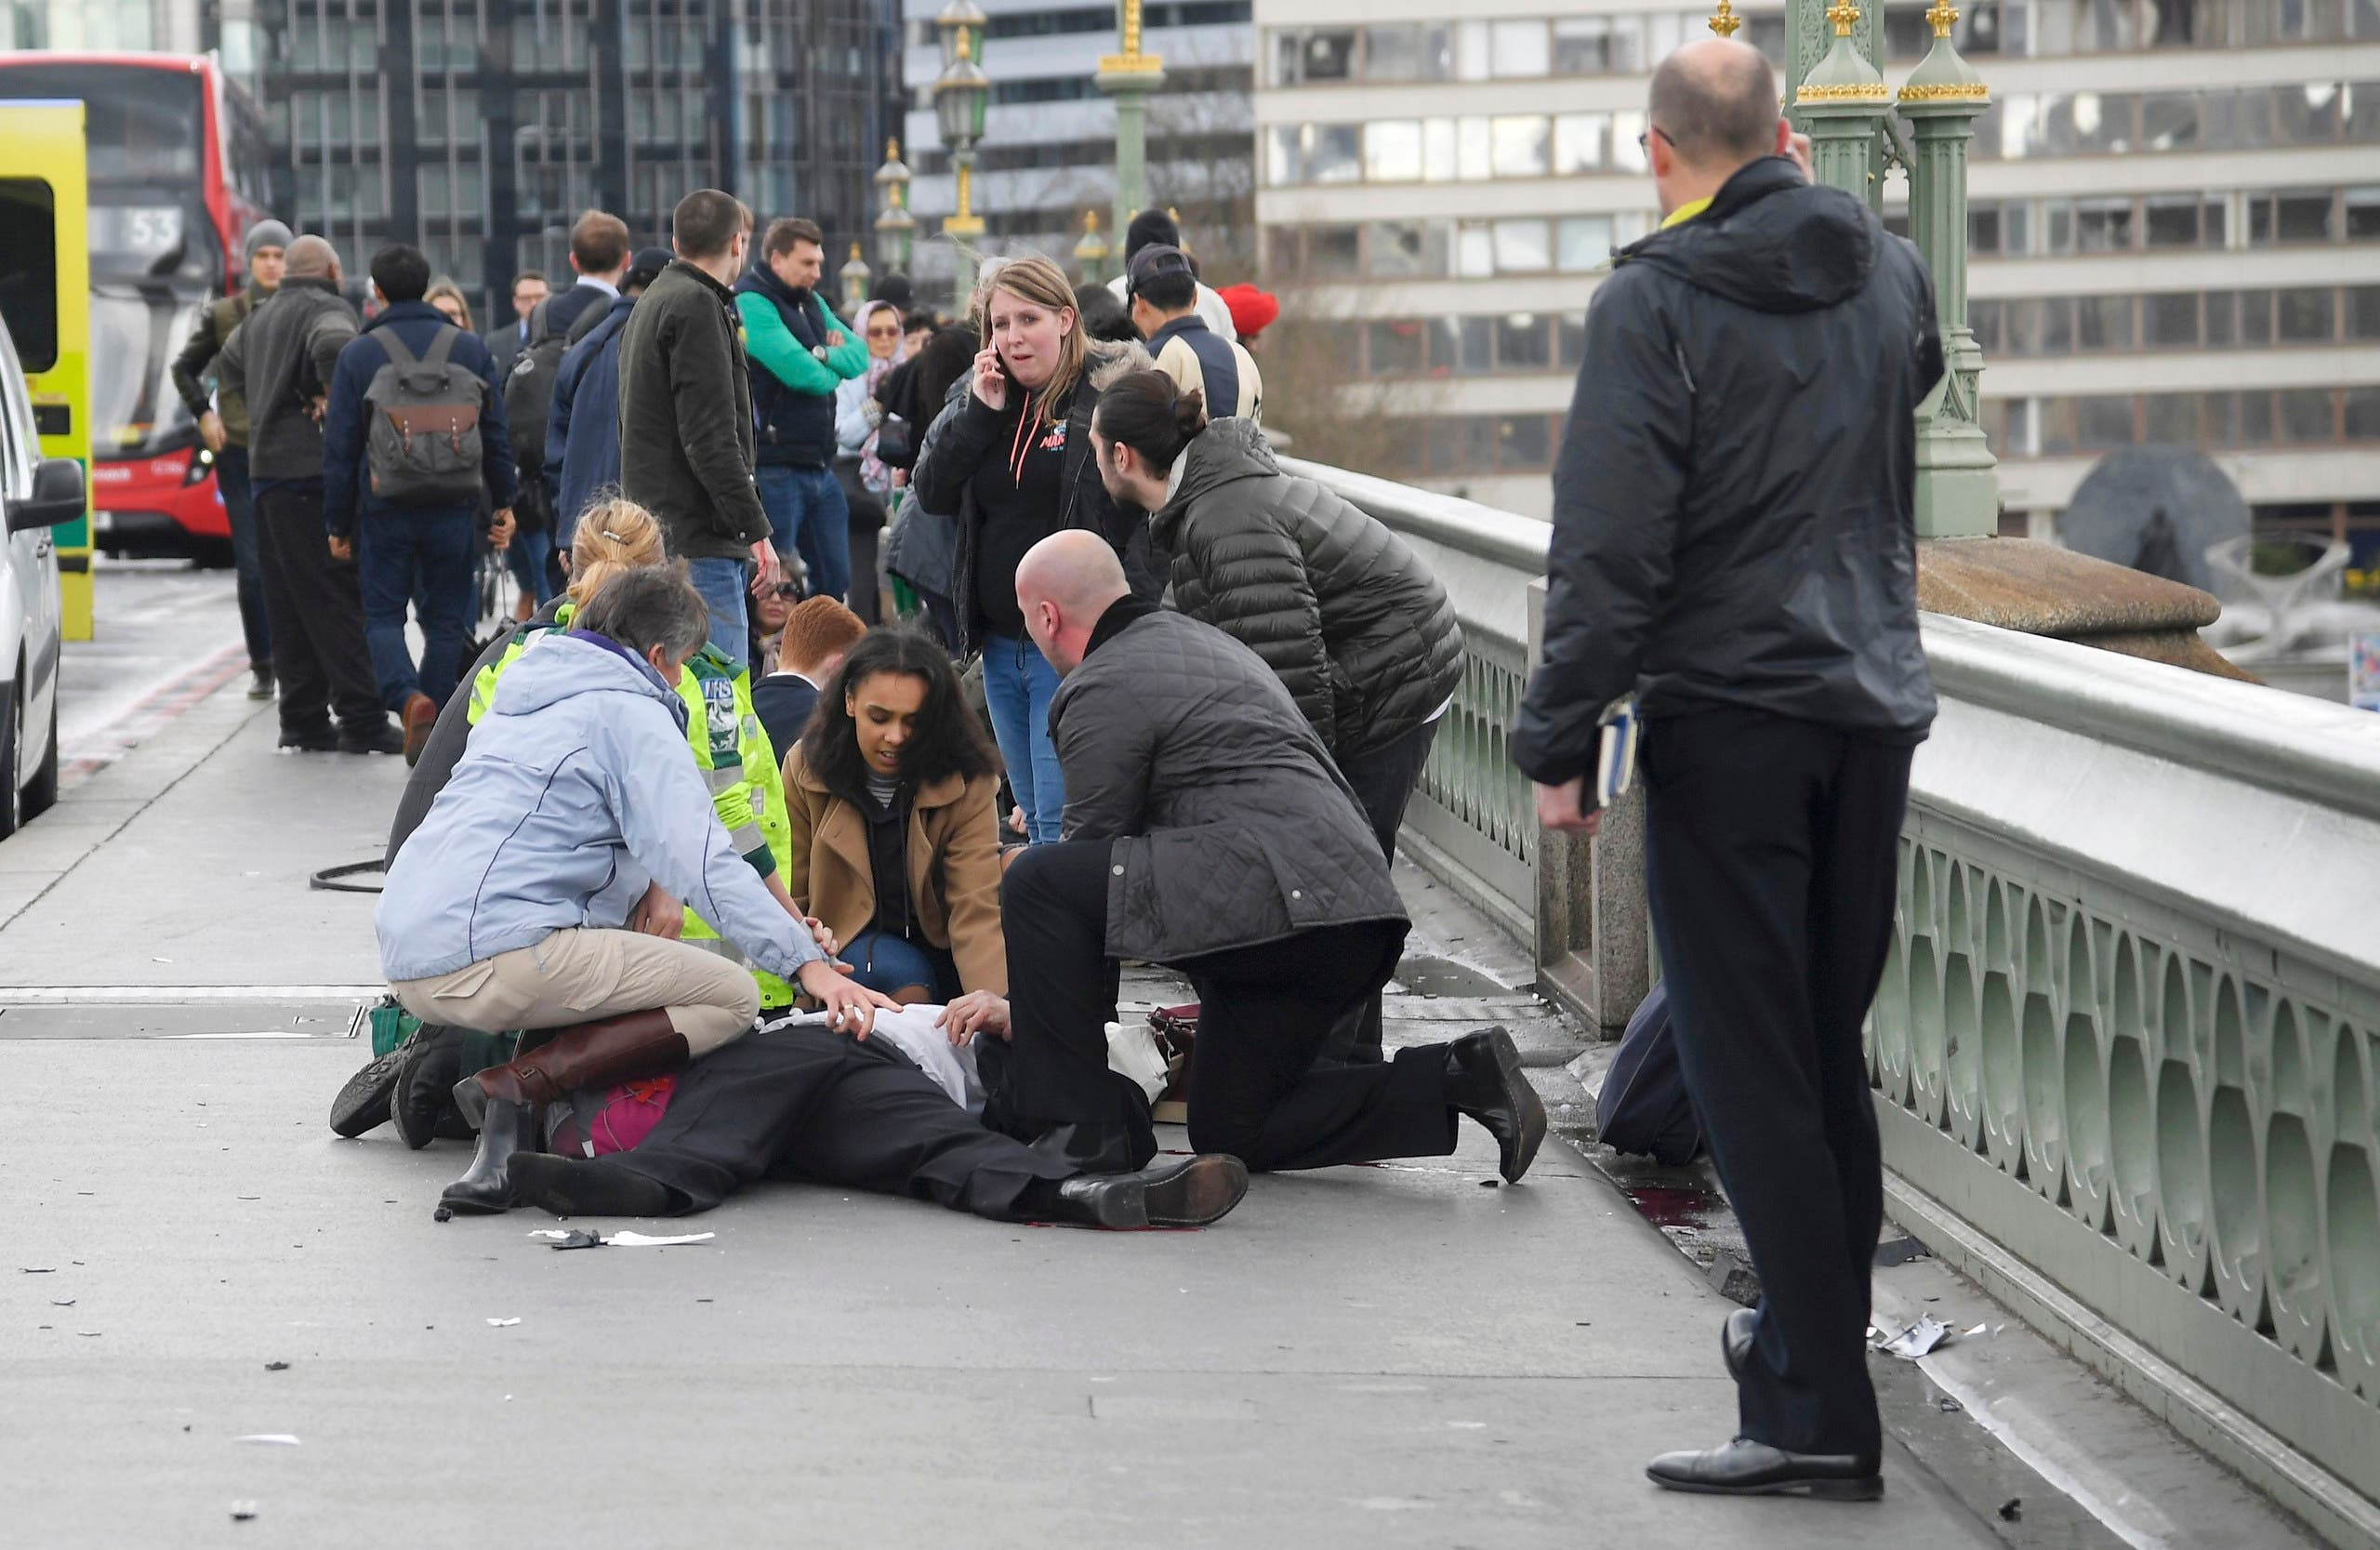 Injured people are assisted after an incident on Westminster Bridge in London, March 22, 2017. (Reuters)